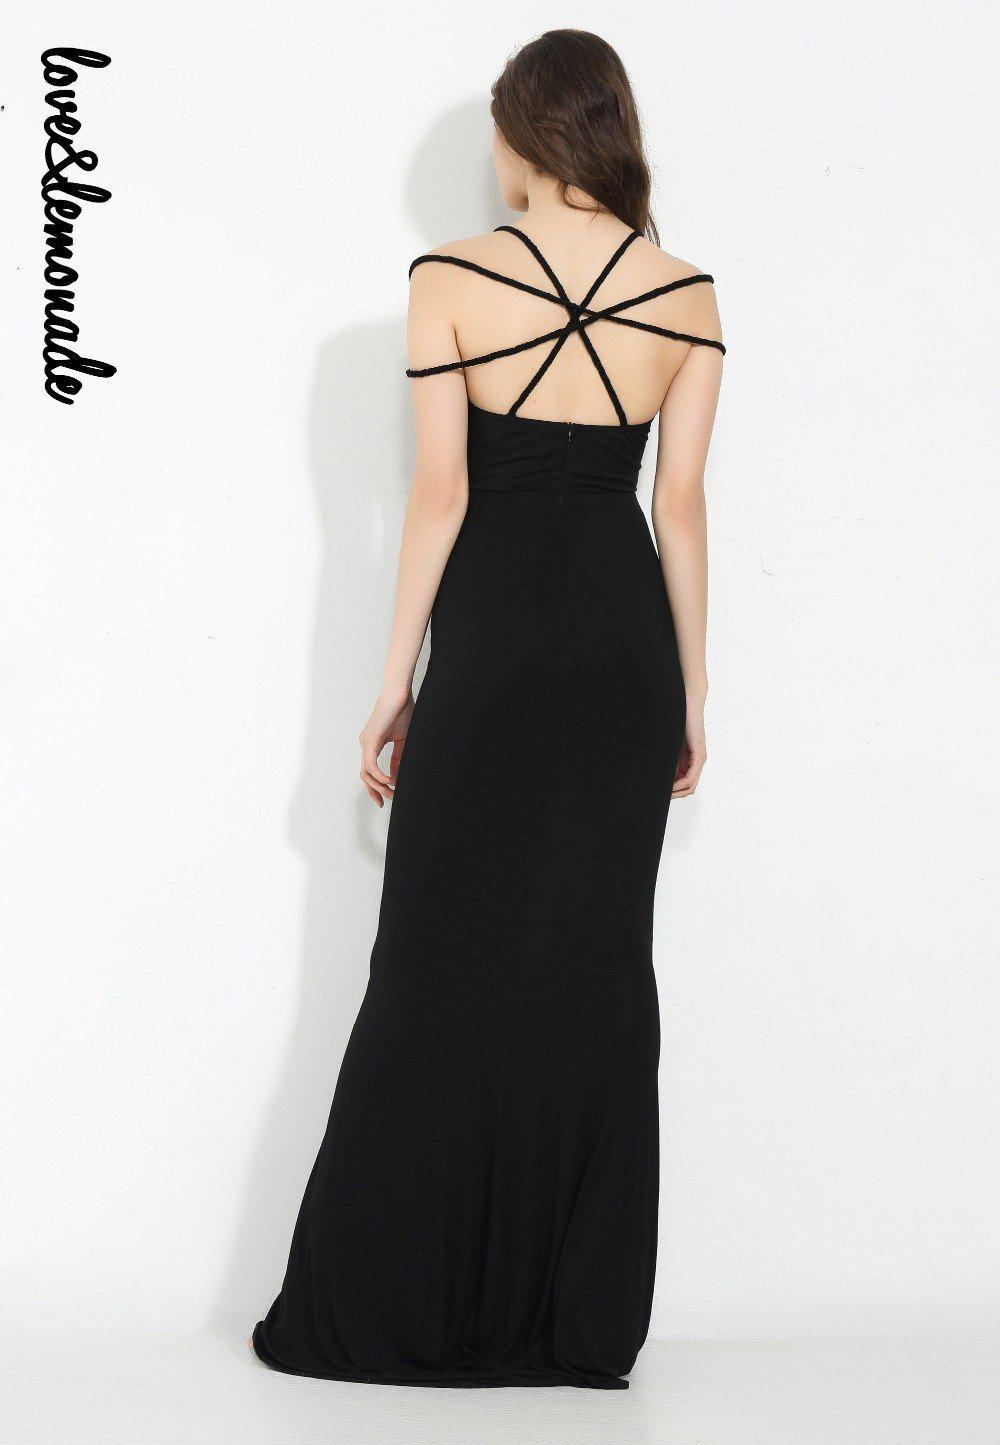 Sexy Black Strapless Cross Modeling Maxi Dress-Dress-SheSimplyShops